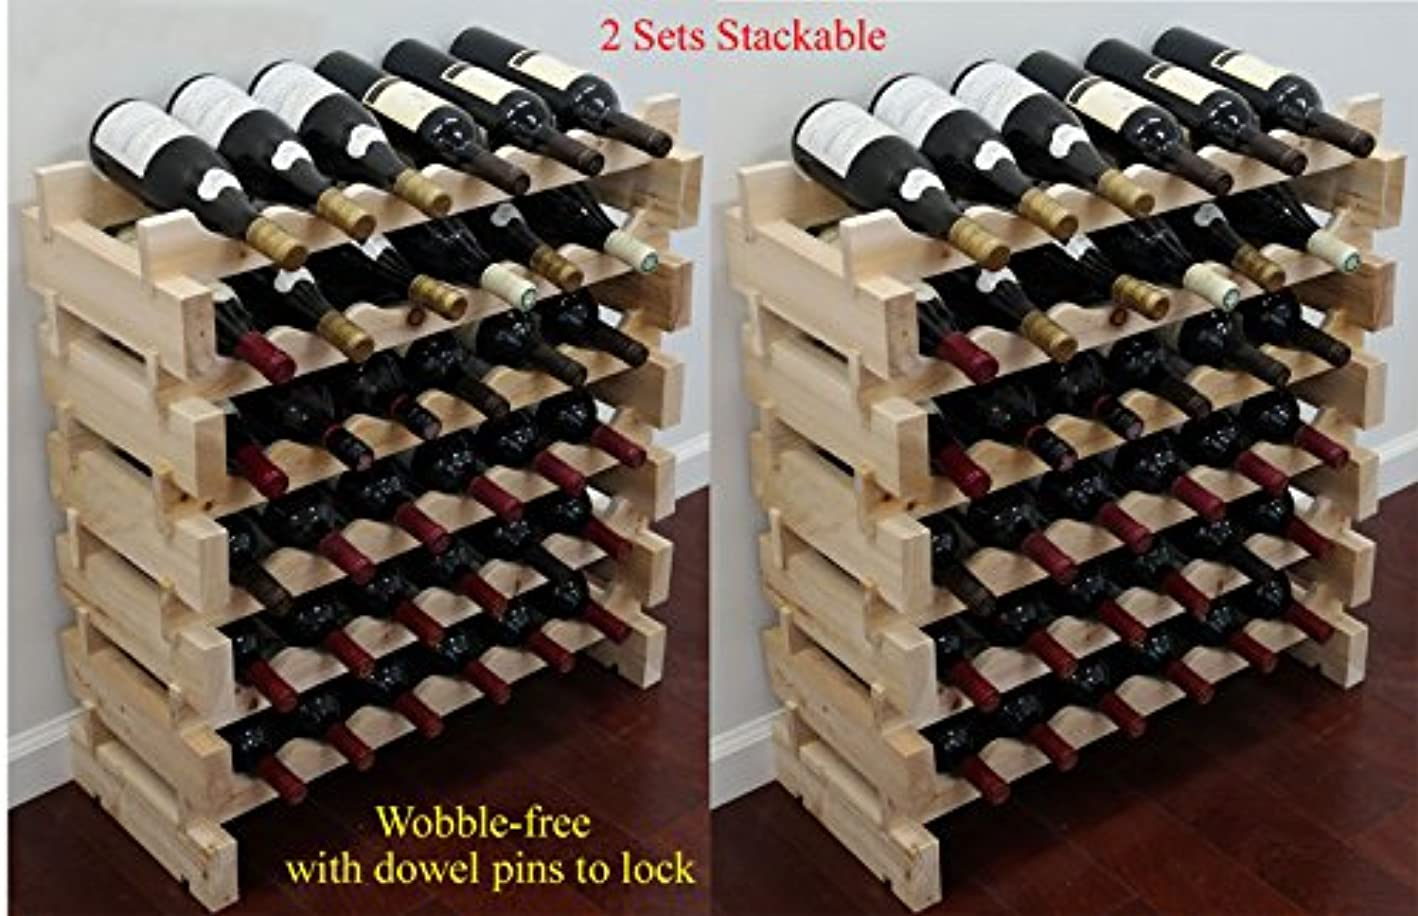 DisplayGifts Stackable Storage Wine Rack Stand, Wobble-Free, 72 Bottle Capacity, 6 X 12 Row